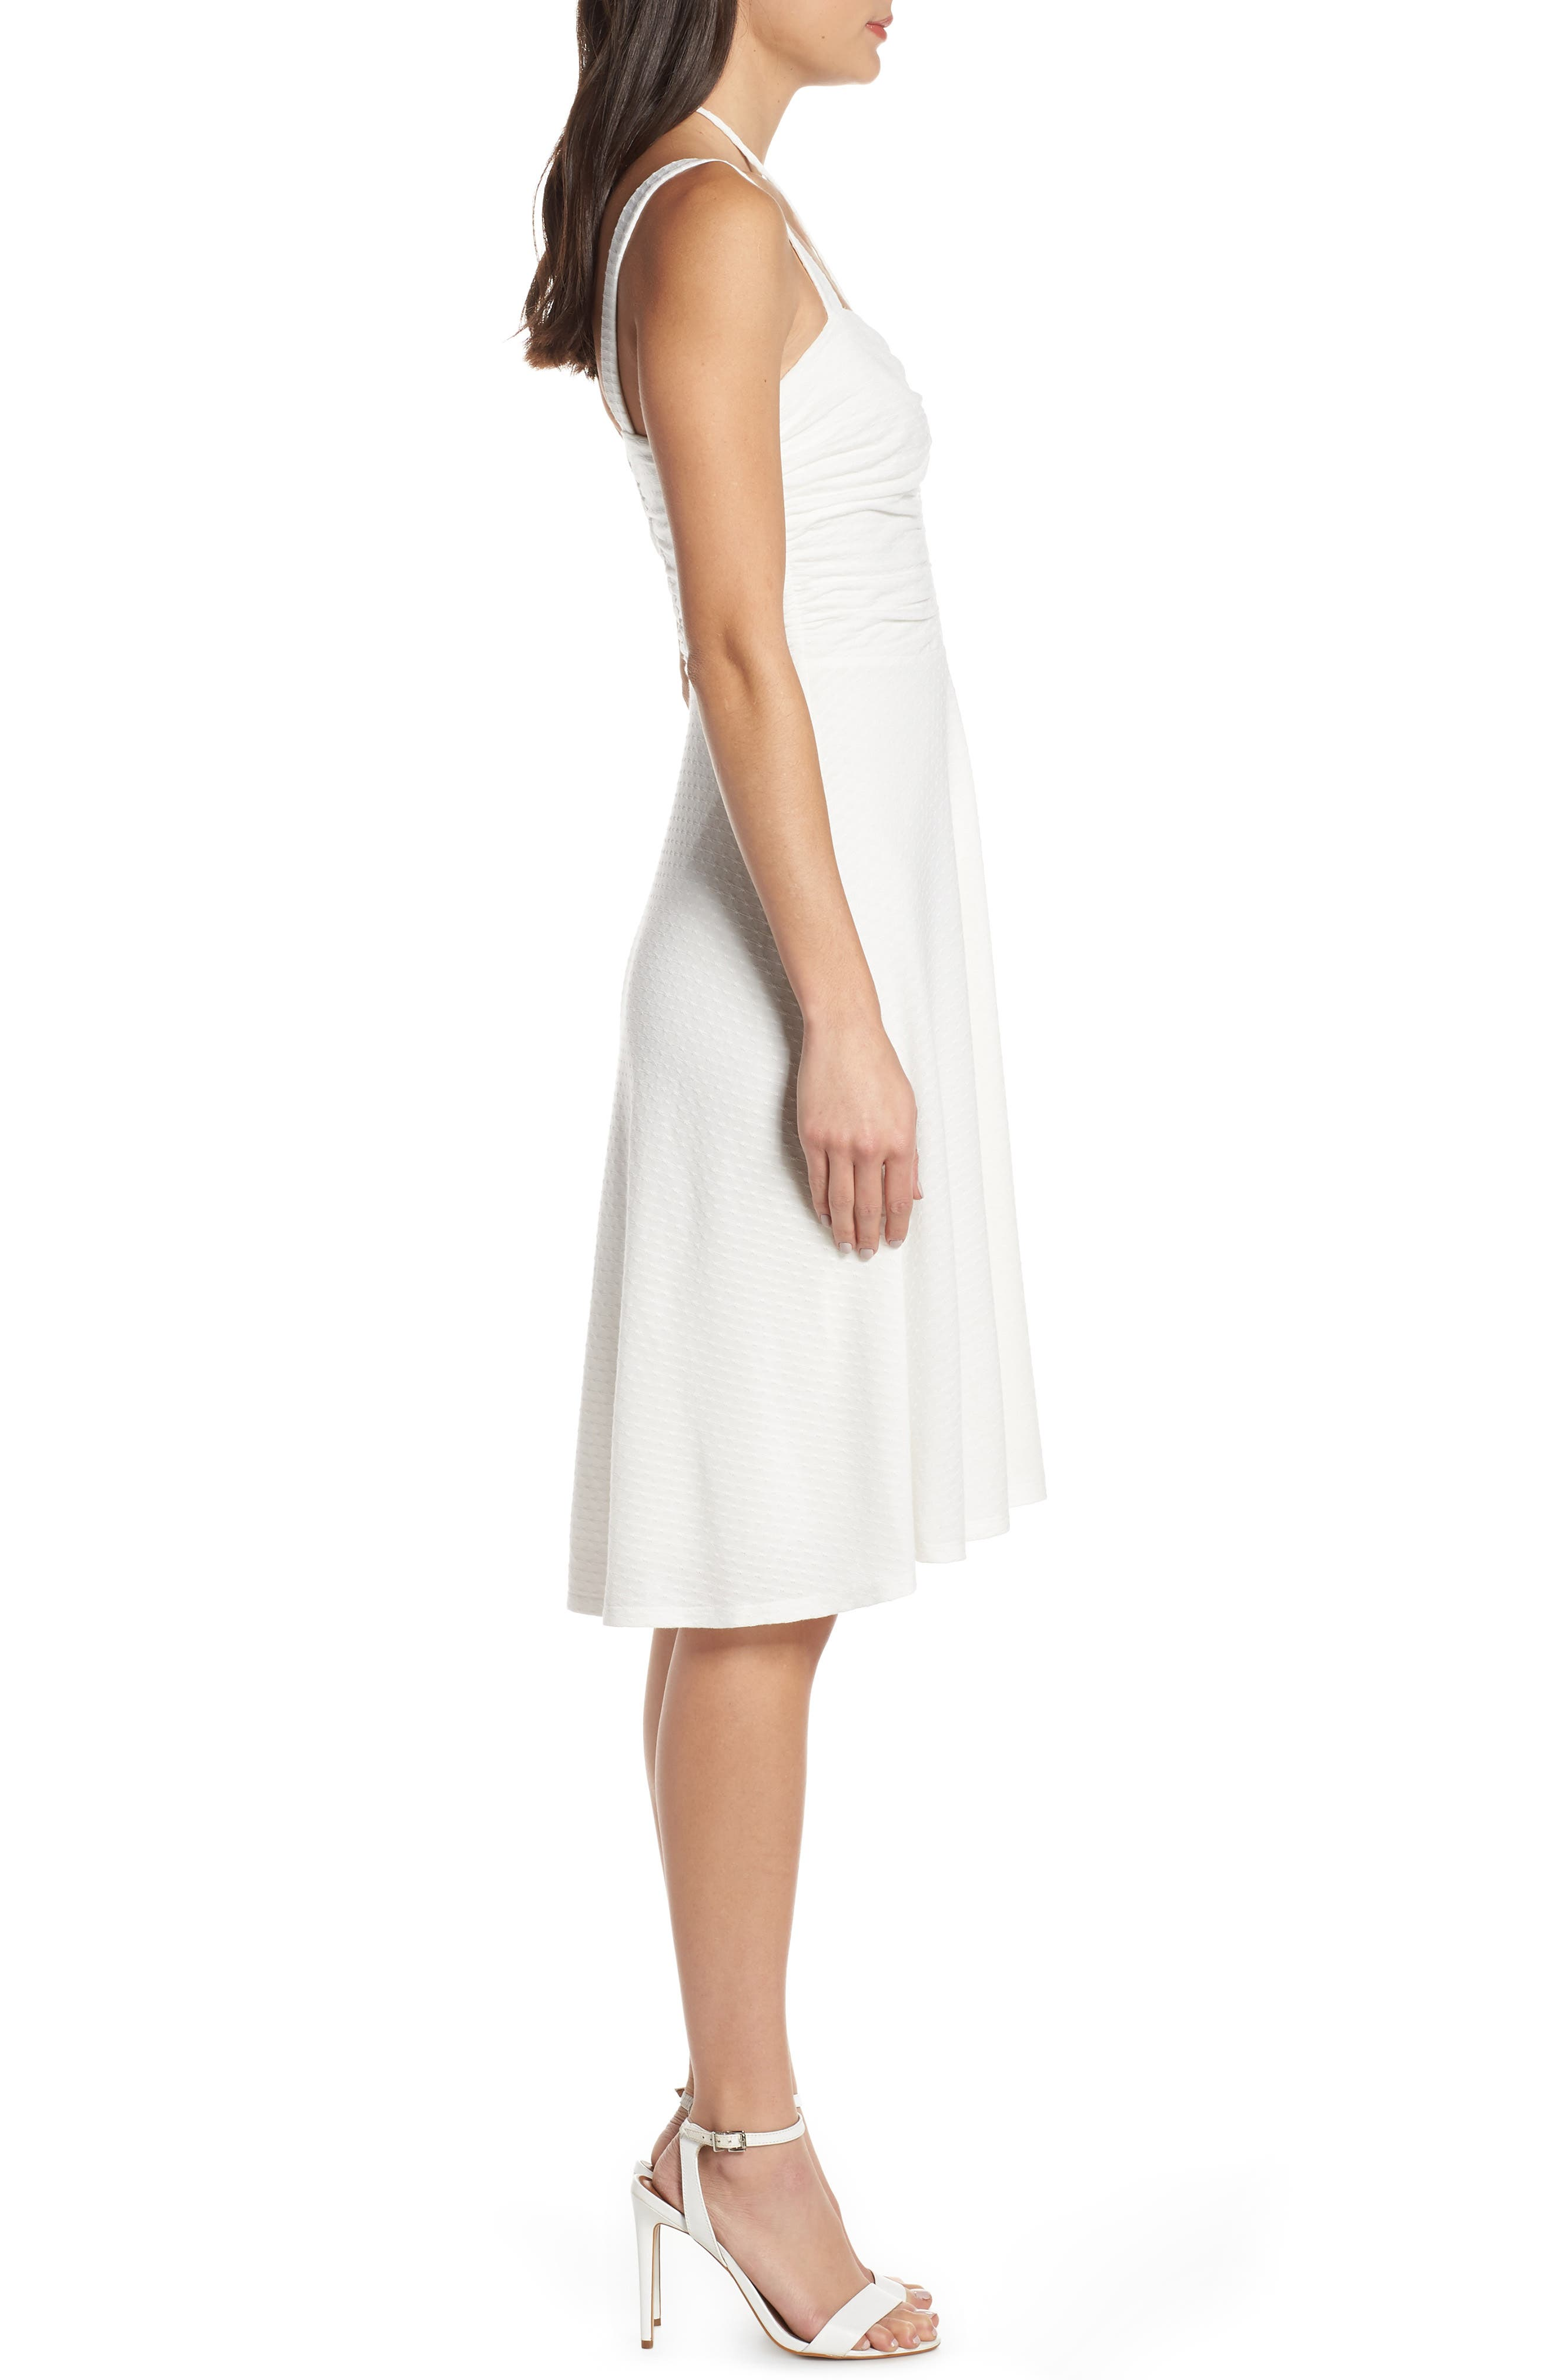 ALI & JAY, Smell the Flowers Fit & Flare Dress, Alternate thumbnail 4, color, WHITE